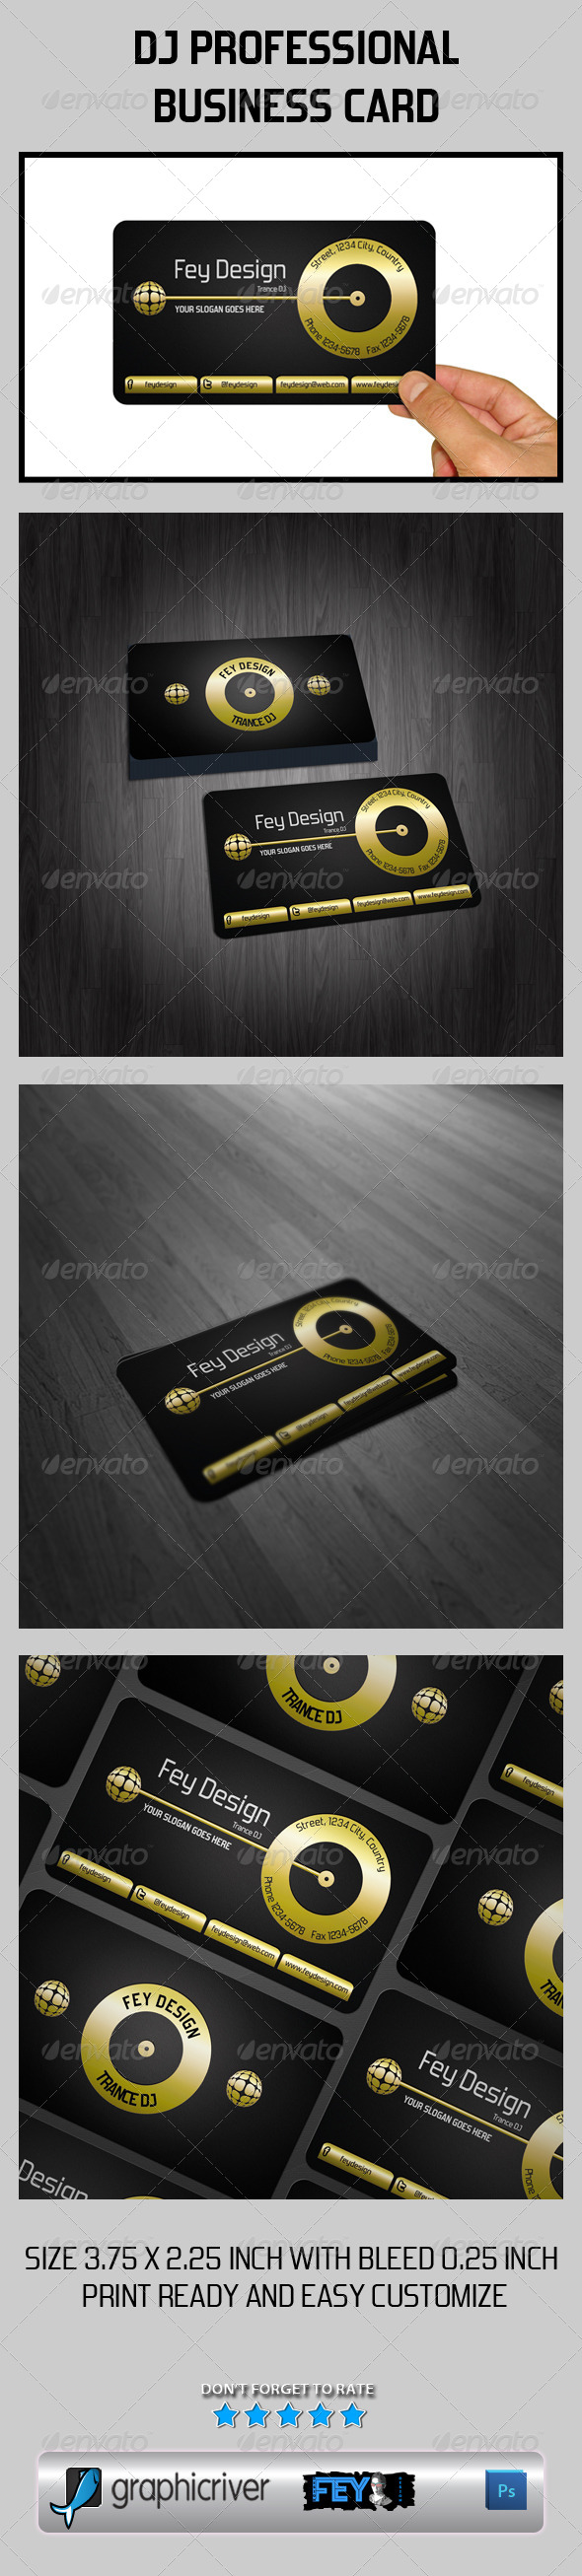 Dj Professional Business Card - Business Cards Print Templates